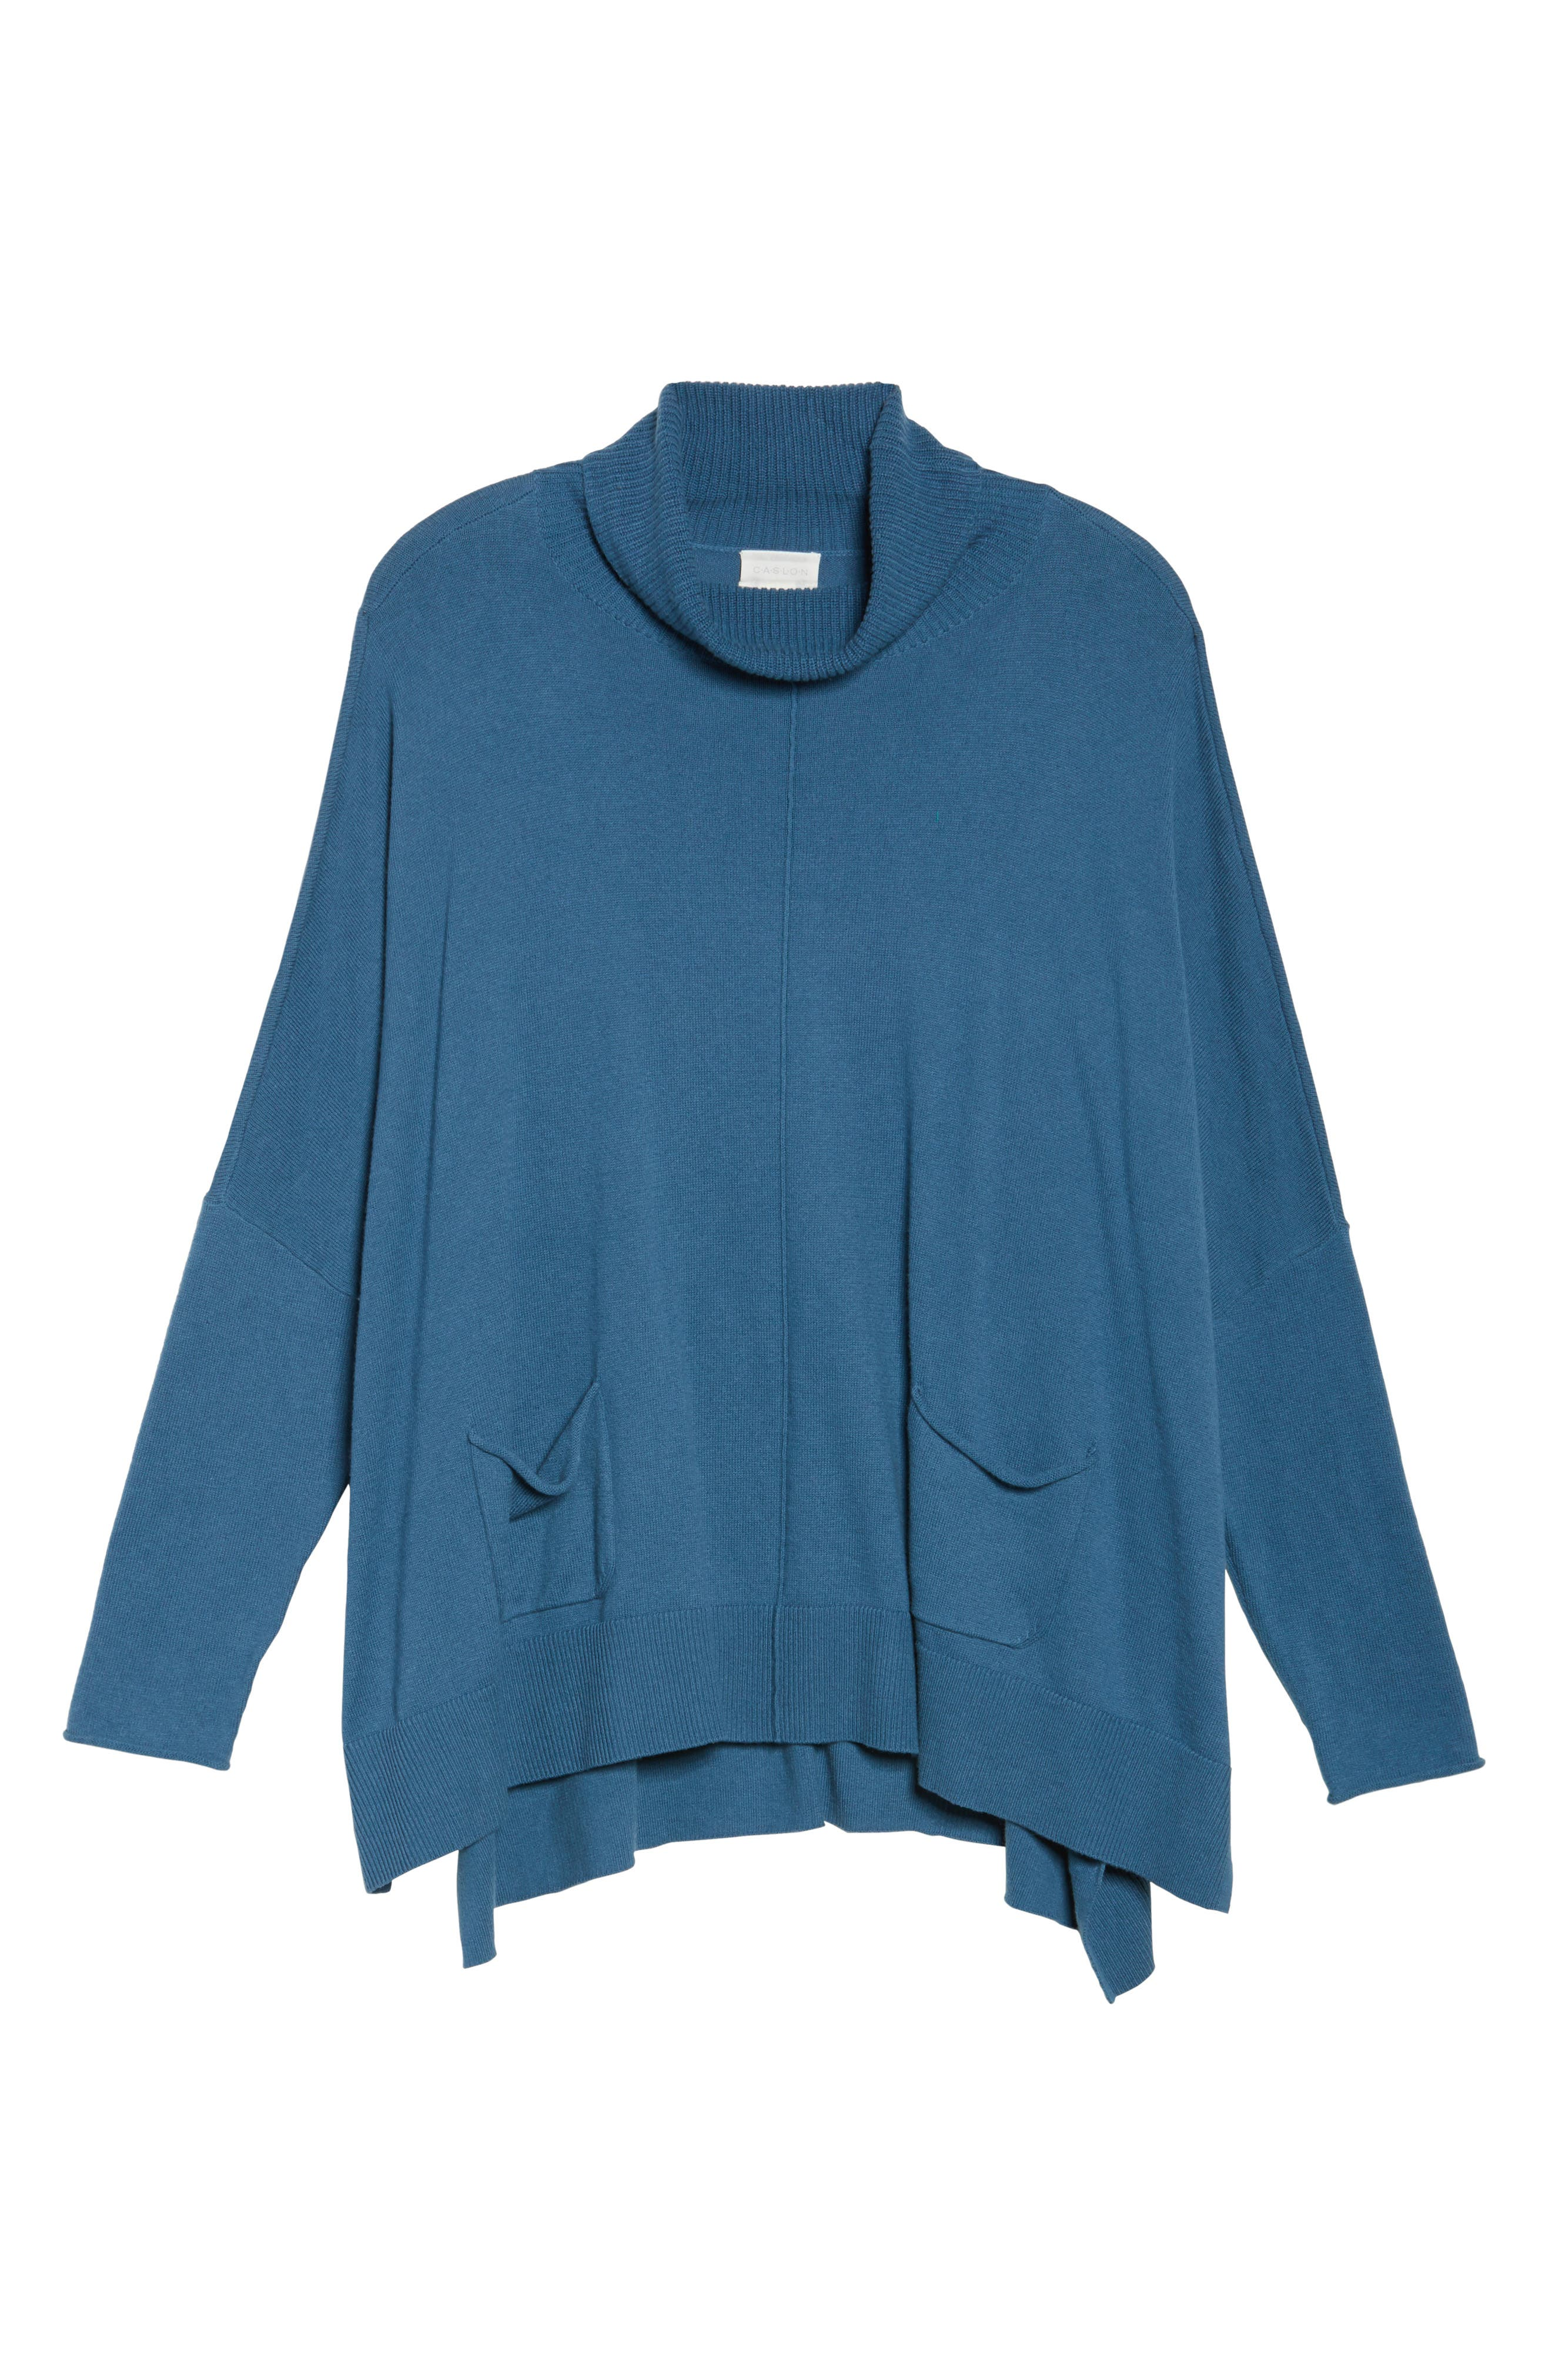 Relaxed Cotton & Cashmere Sweater,                             Alternate thumbnail 6, color,                             Teal Sound